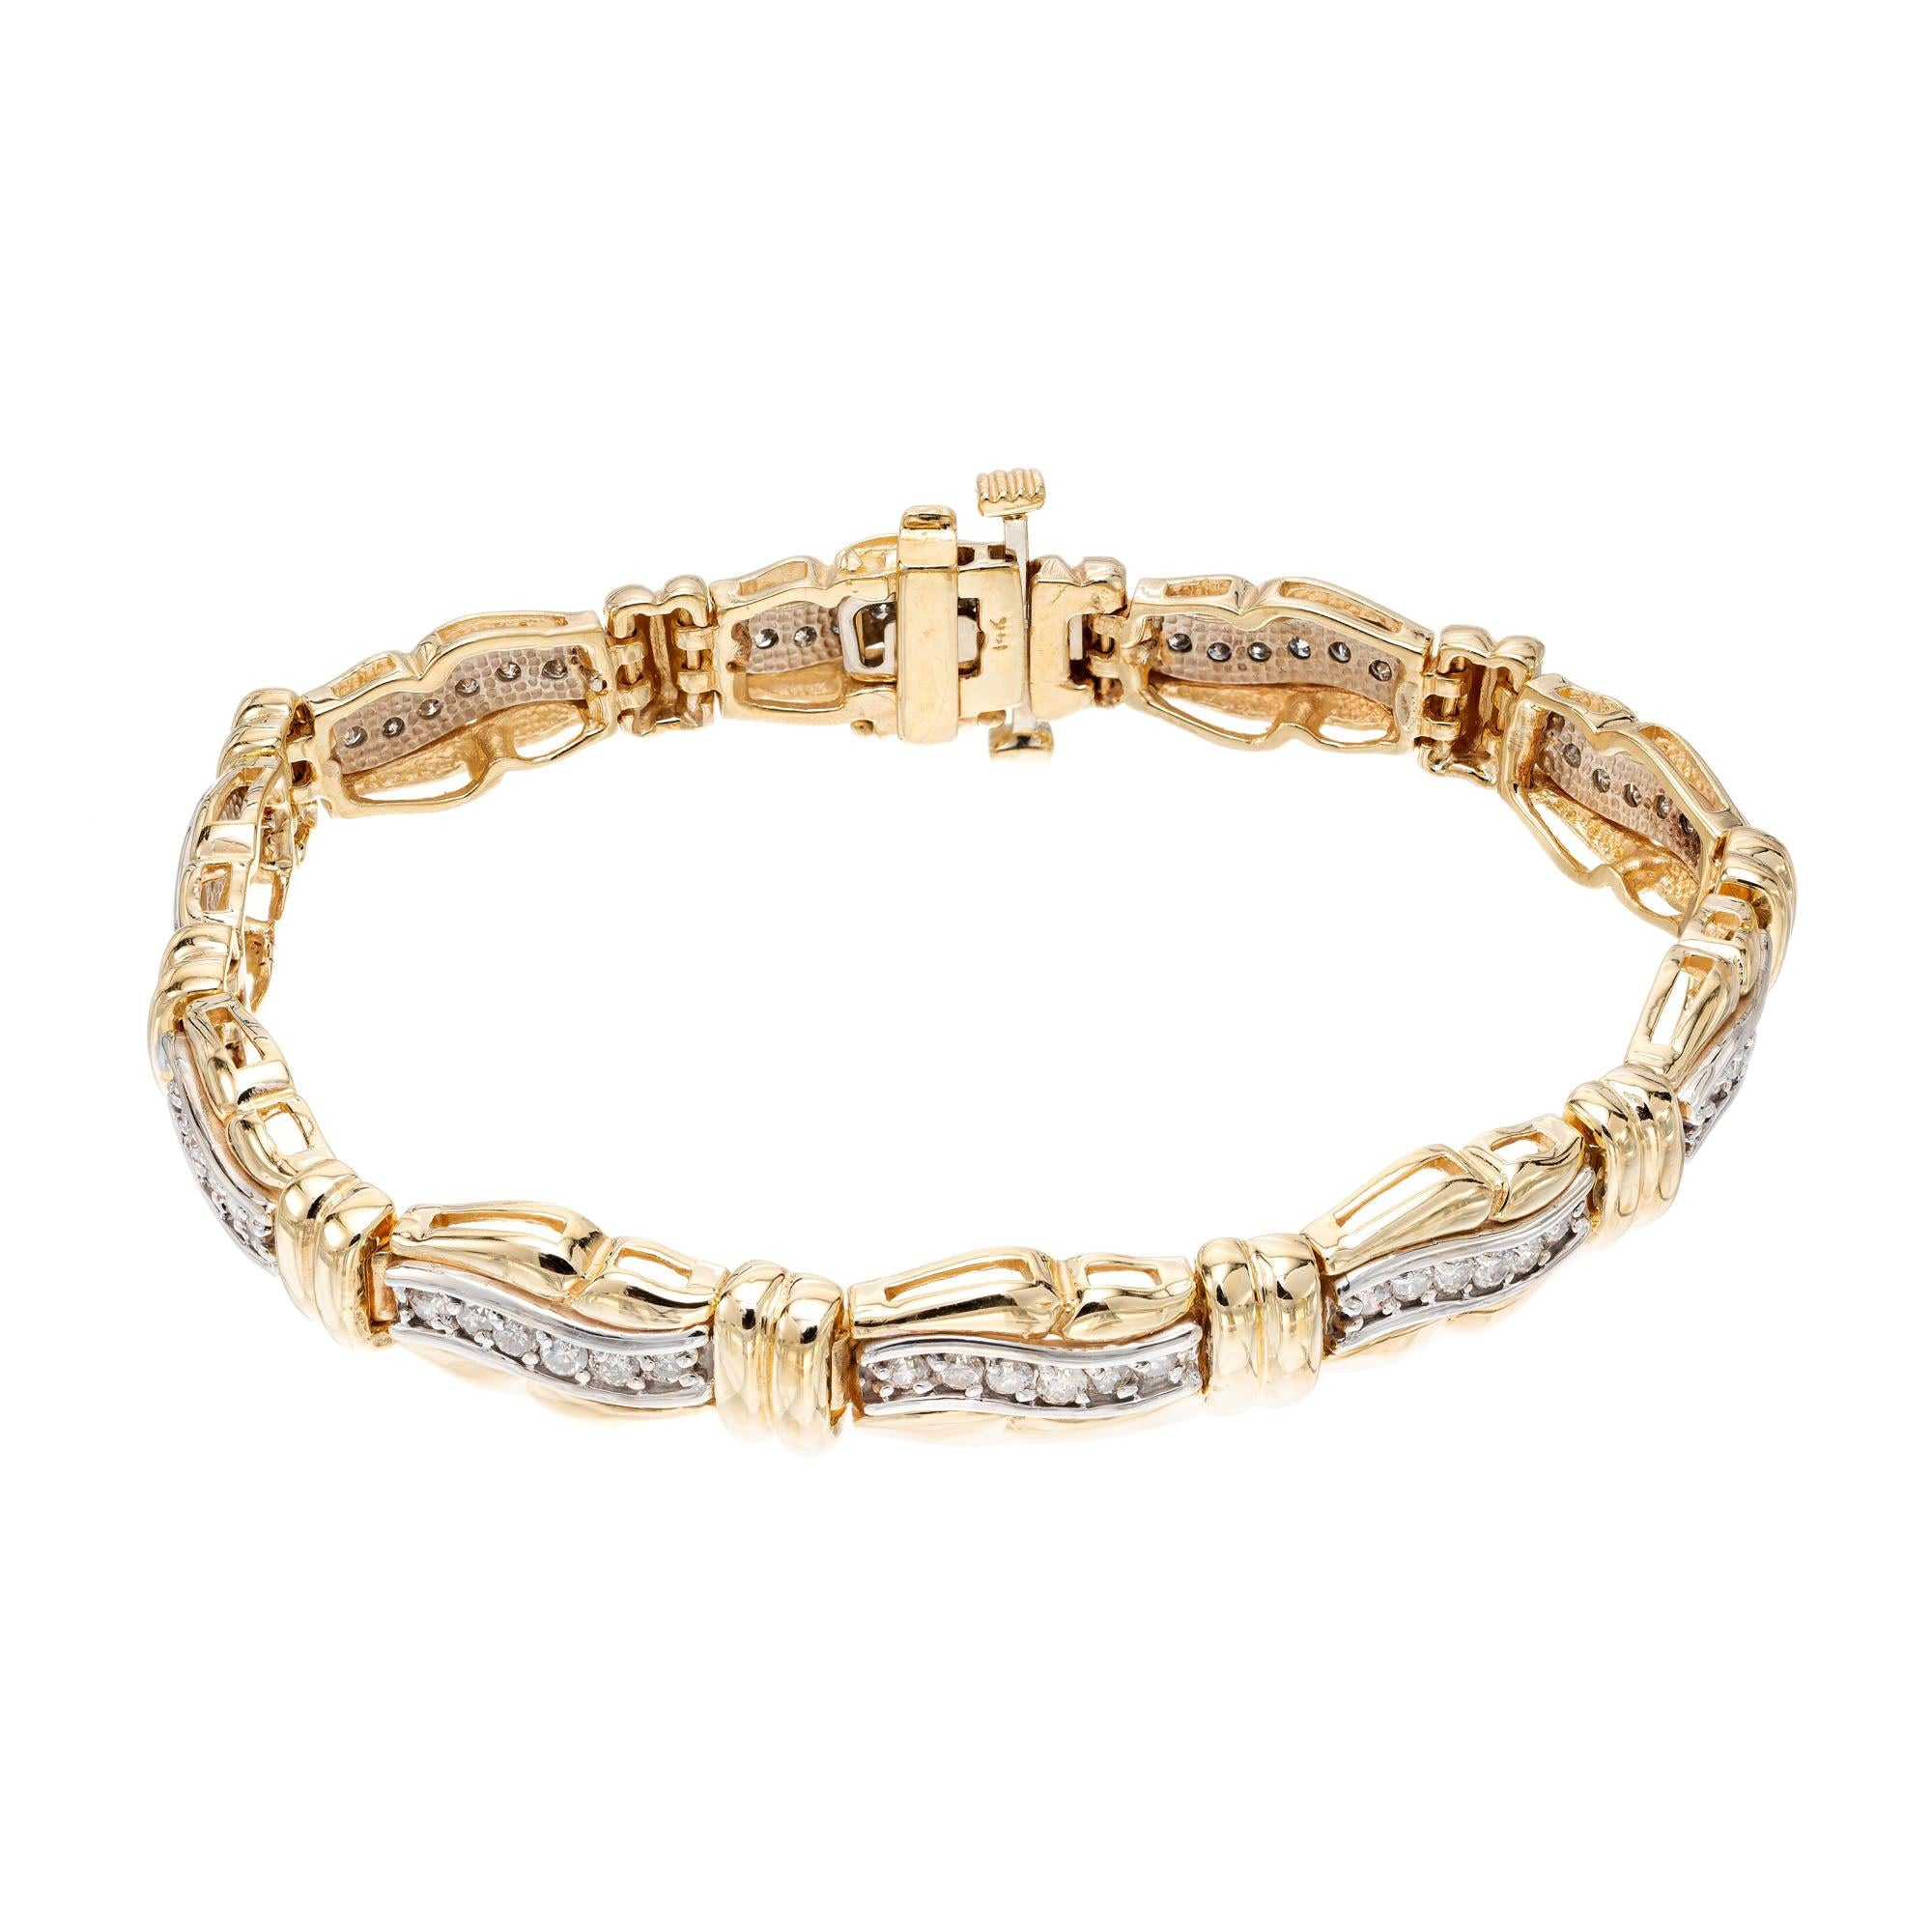 1.25 Carat Diamond Gold Hinged Swirl Link Bracelet